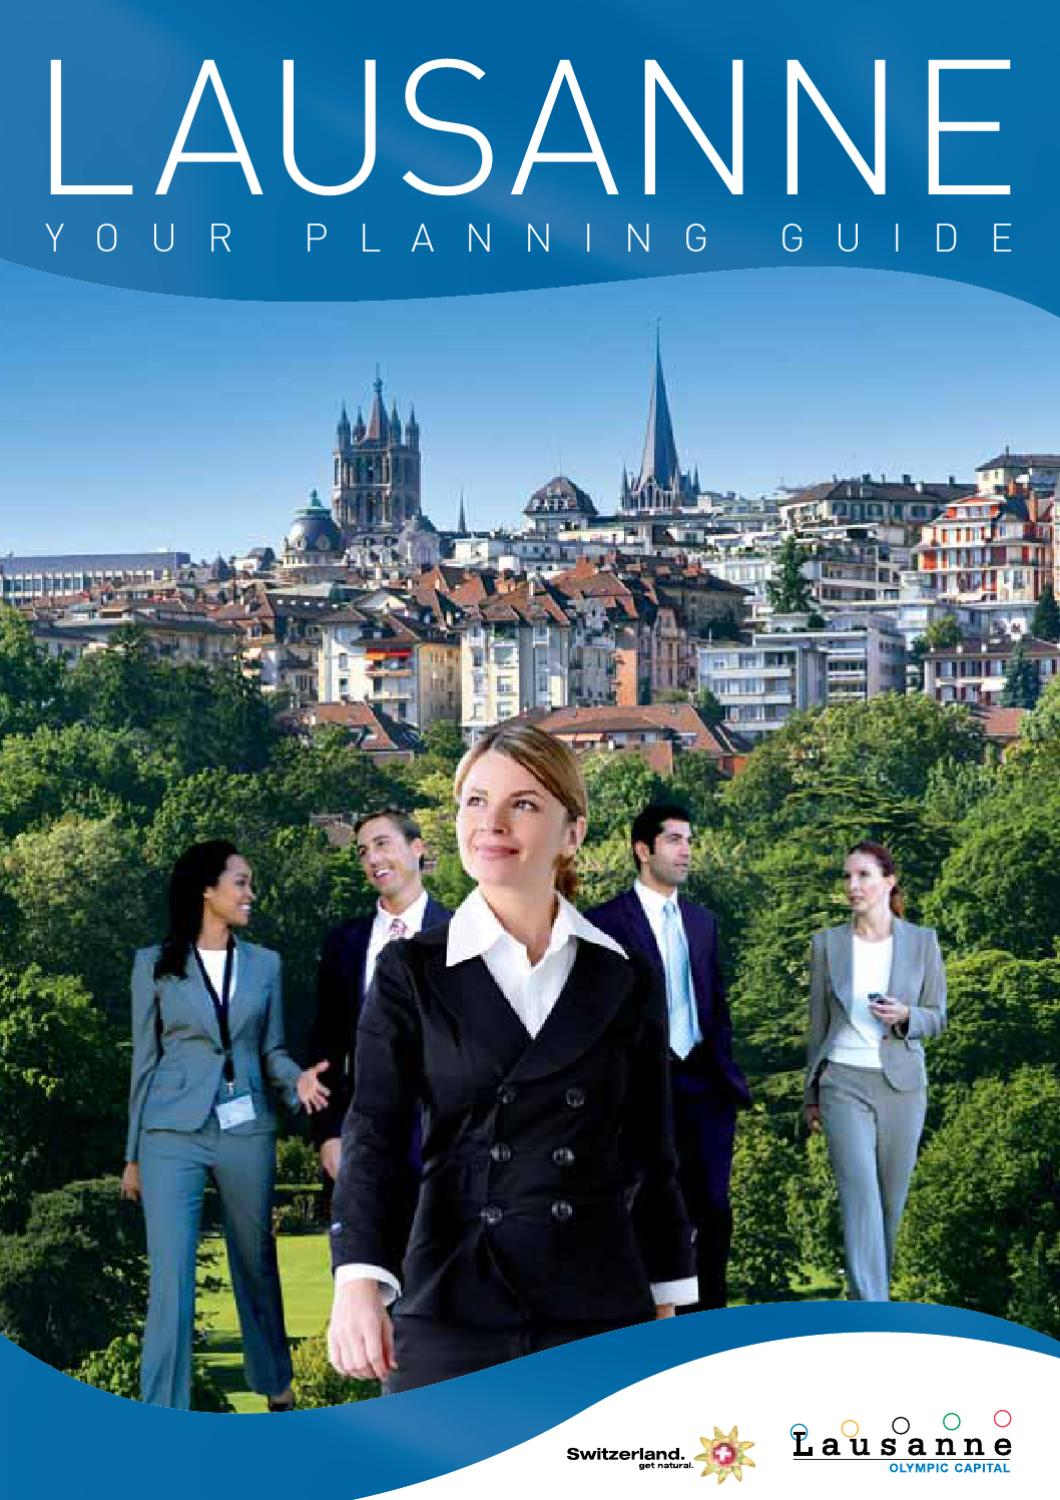 Lausanne planning guide (56309en) by switzerland tourism   issuu